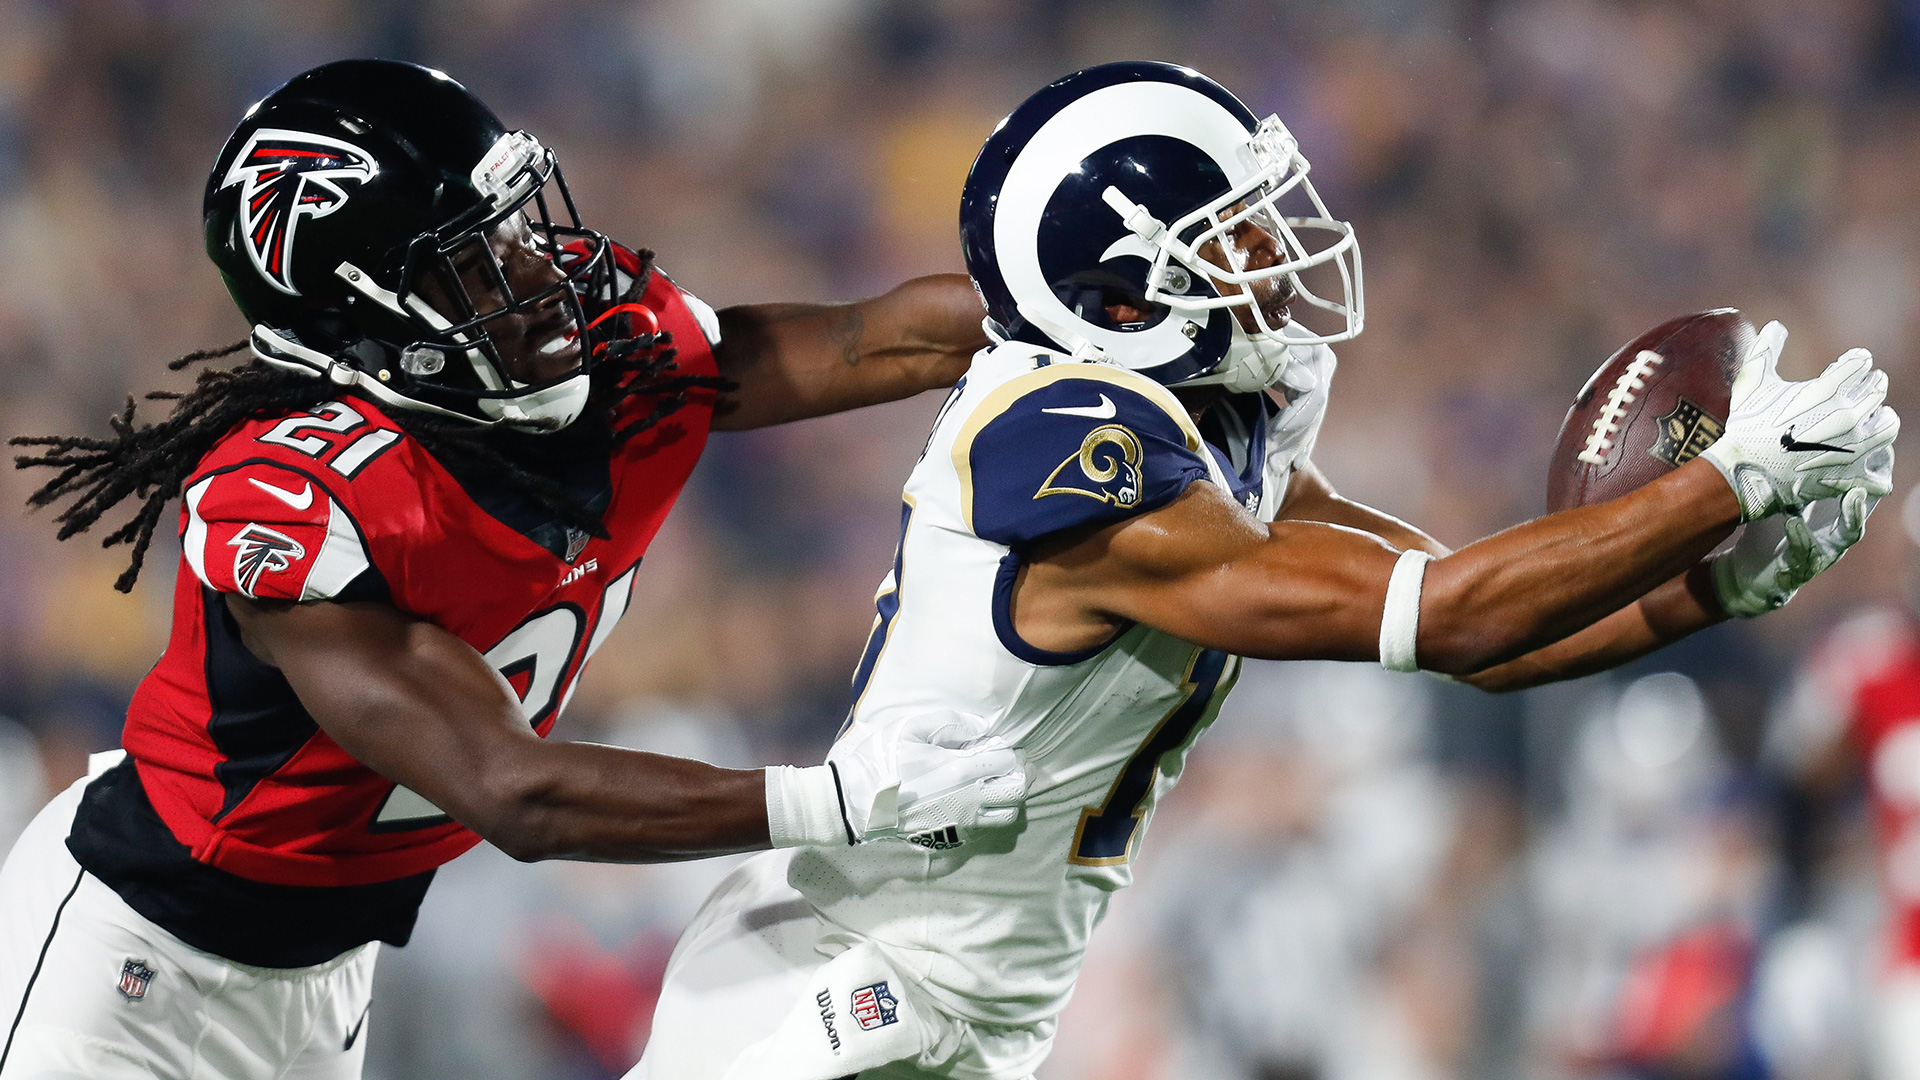 Los Angeles Rams wide receiver Robert Woods (17) catches the ball in front of Atlanta Falcons cornerback Desmond Trufant (21) during an NFL football NFC wild card playoff game.